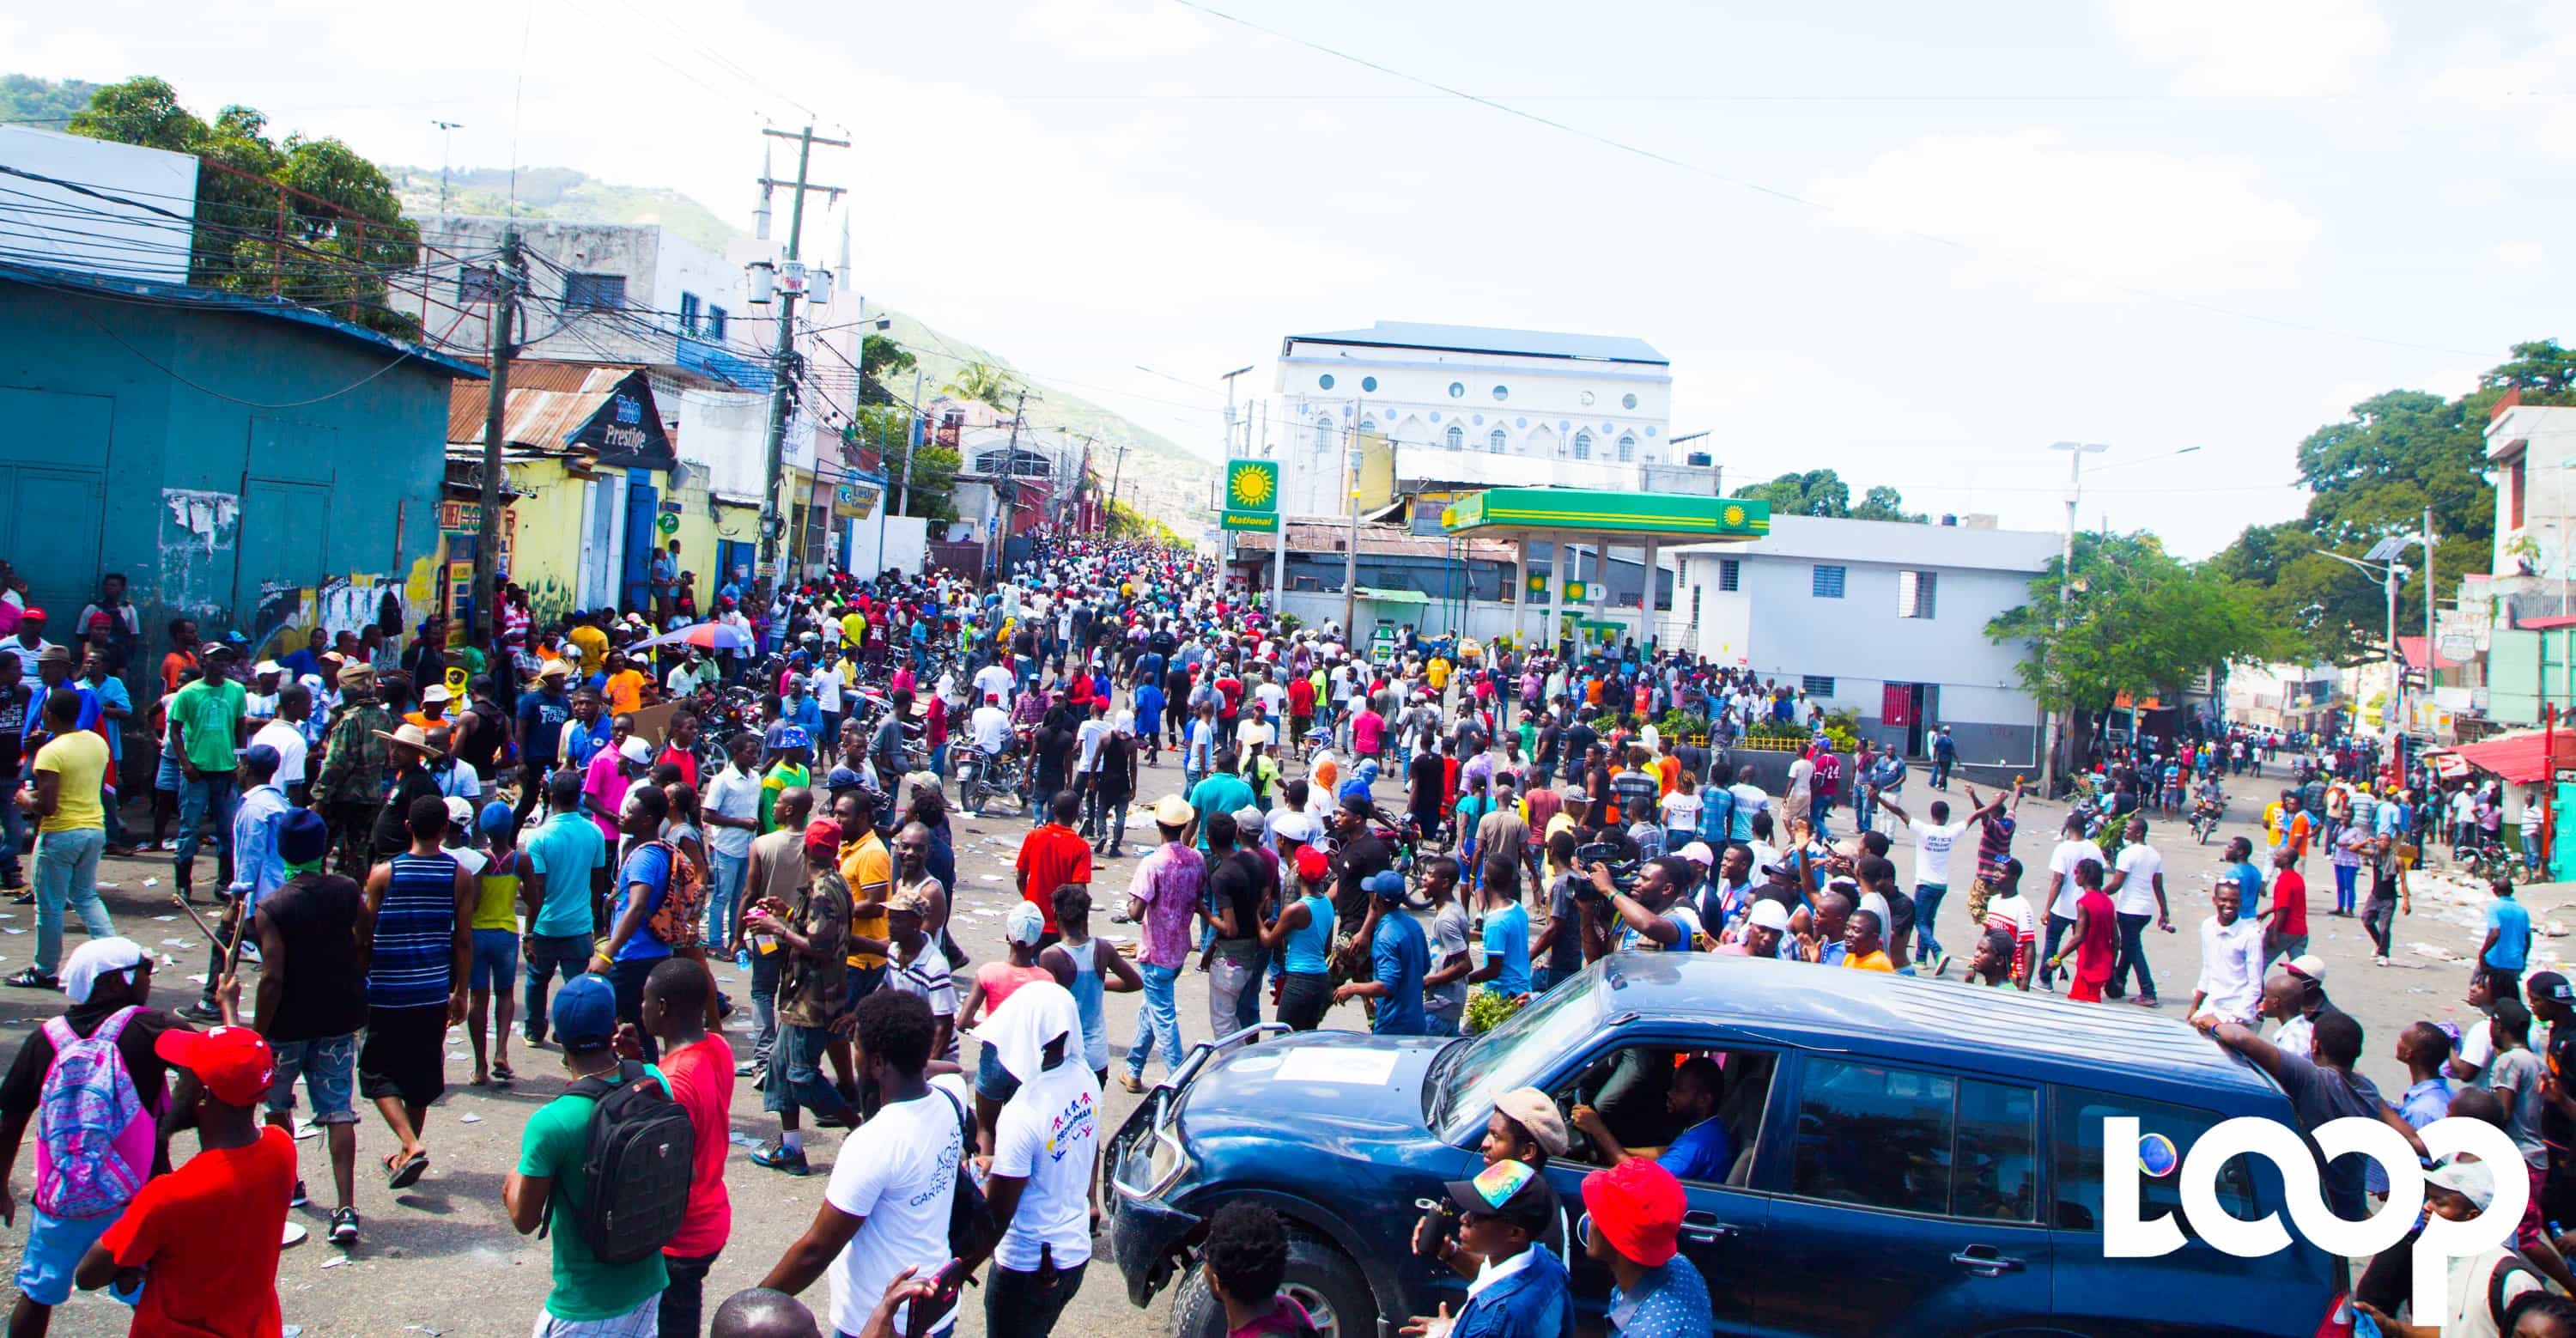 Manifestation du 17 octobre 2018, à Port-au-Prince, contre la corruption et l'impunité / Photo: Luckenson Jean / Loop Haiti